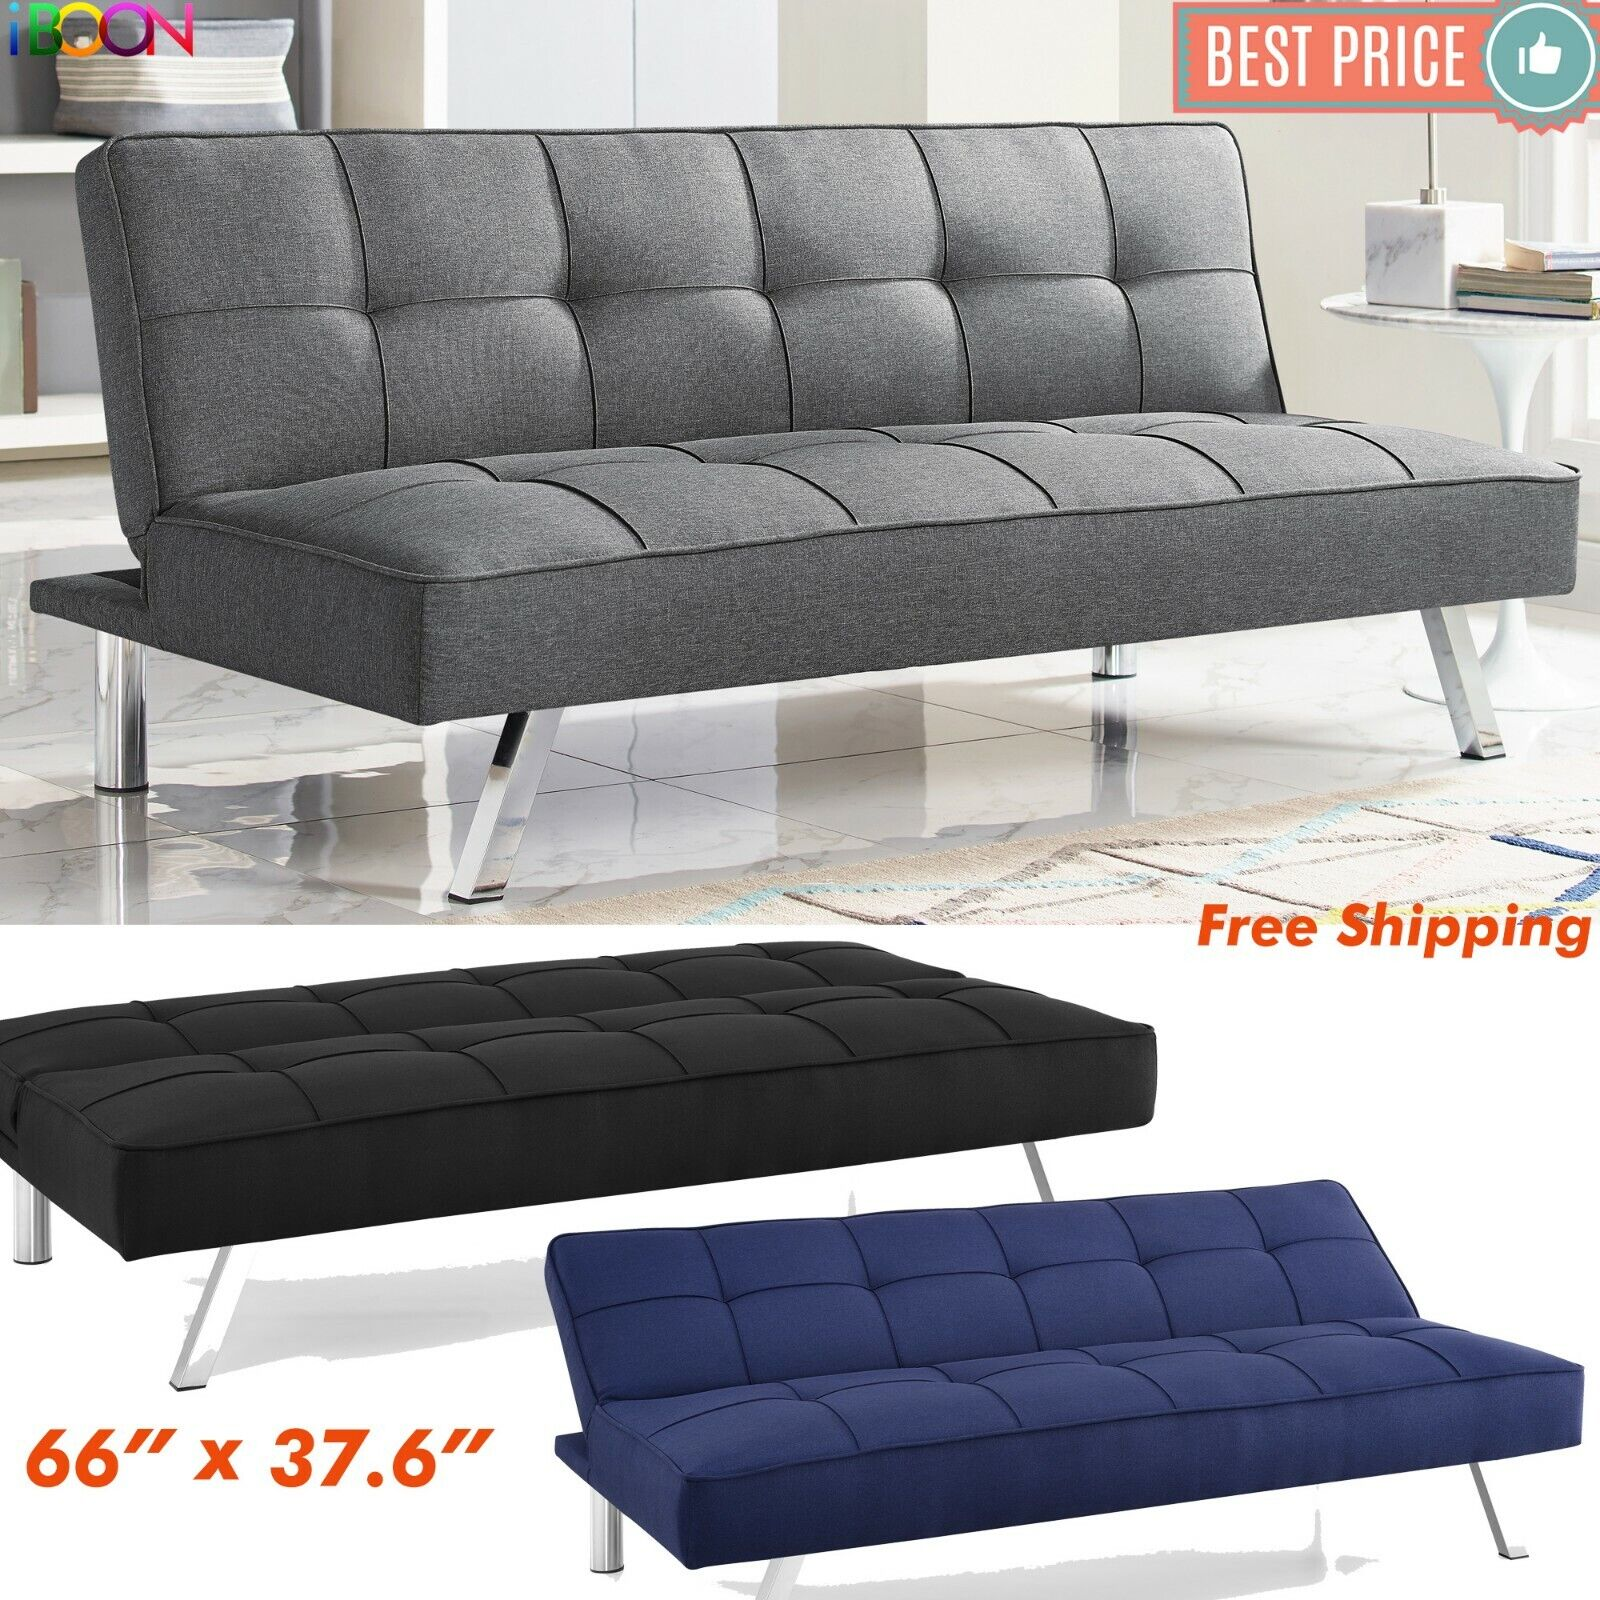 Mainstays Black Metal Arm Futon Sofa Convertible Bed 6 Mattress Couch Sleeper For Sale Online Ebay